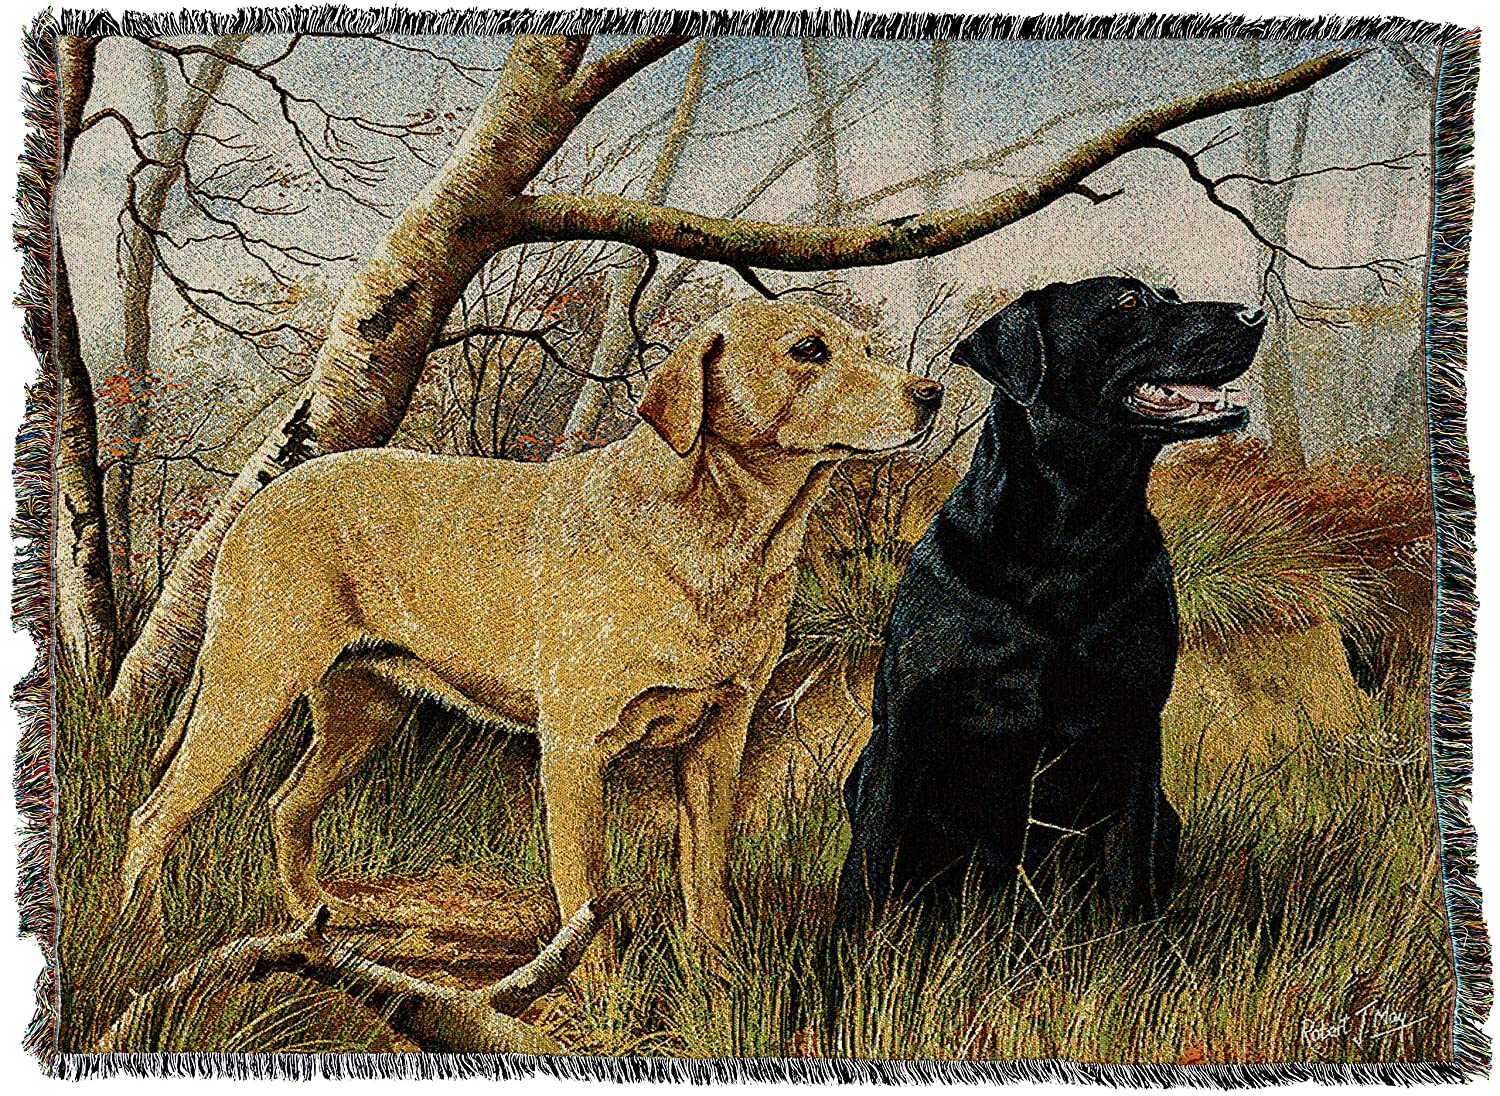 Pure Country 3297-T Yellow and Black Lab Pet Blanket, Various Blended colorways, 53 by 70-Inch by Pure Country Inc. [Pet Supplies]